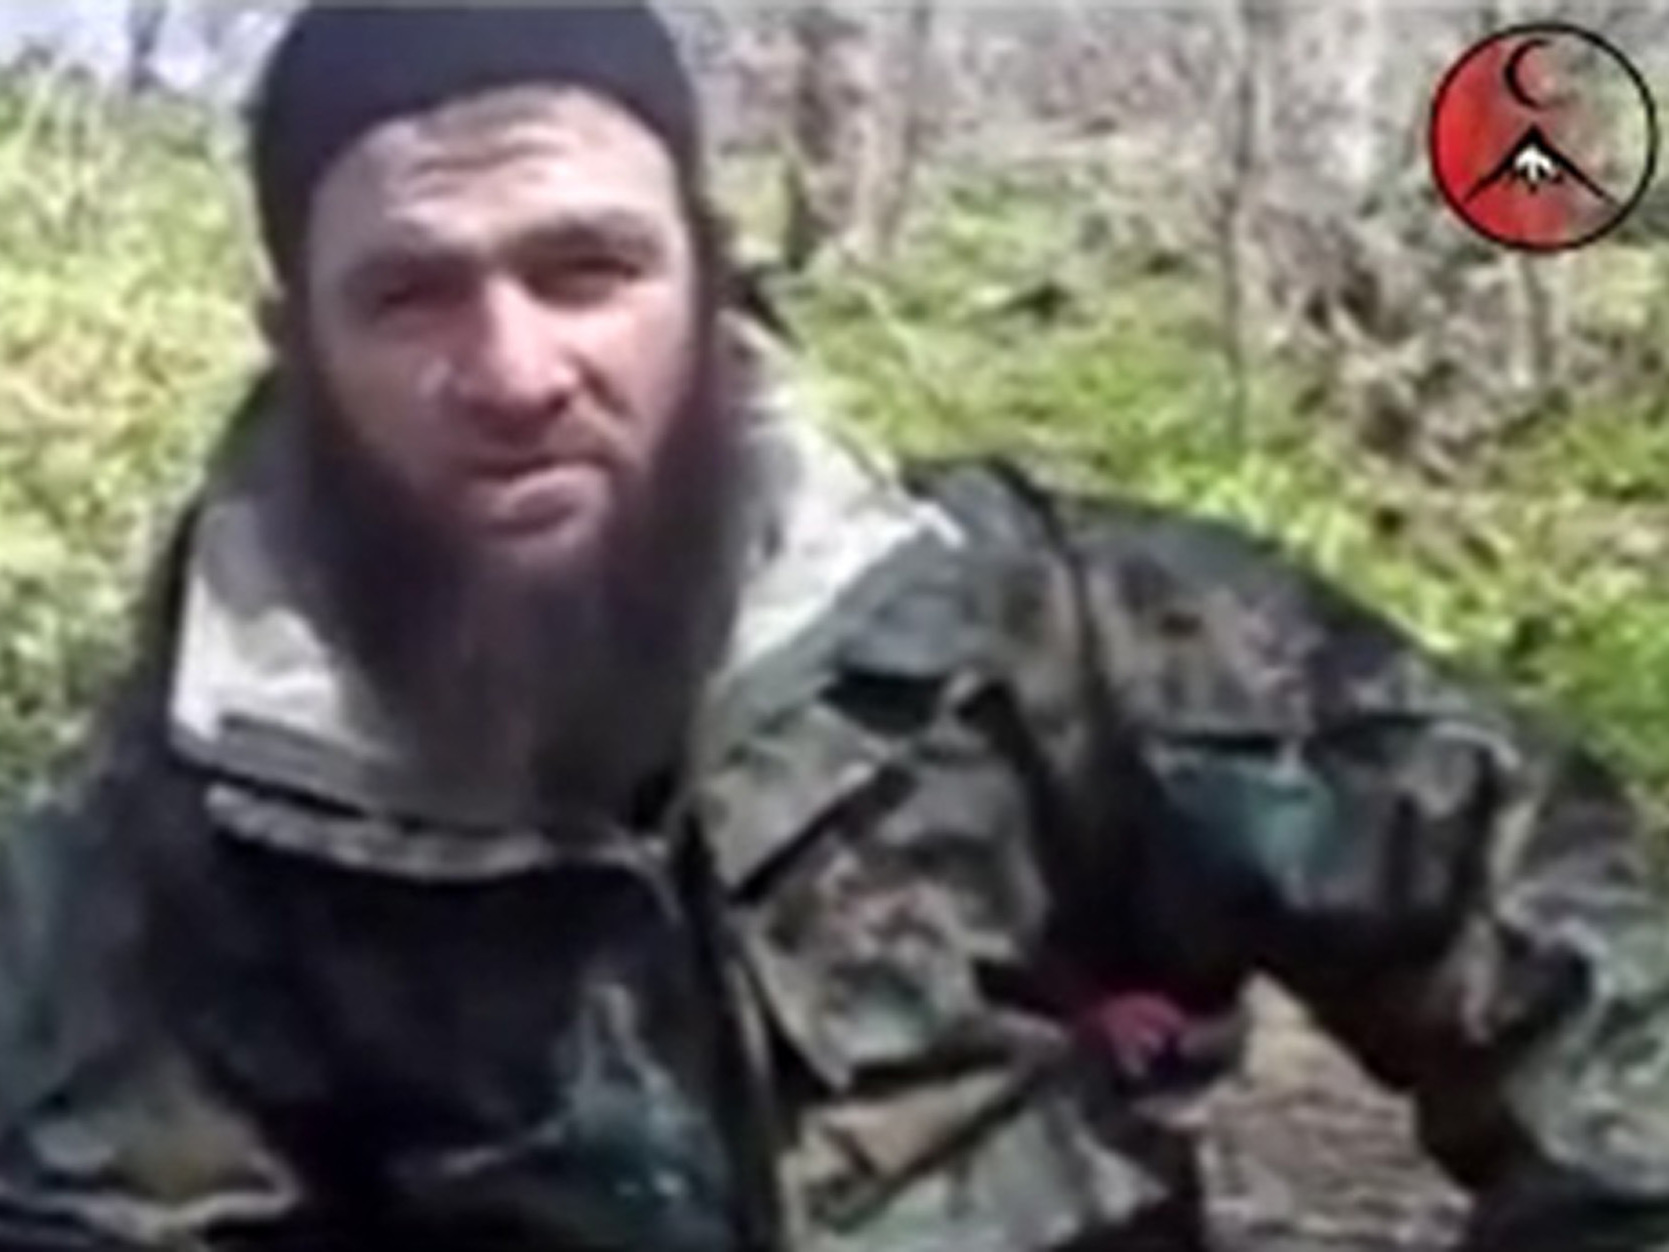 Chechen Leader Known As 'Russia's Bin Laden' Reported Dead